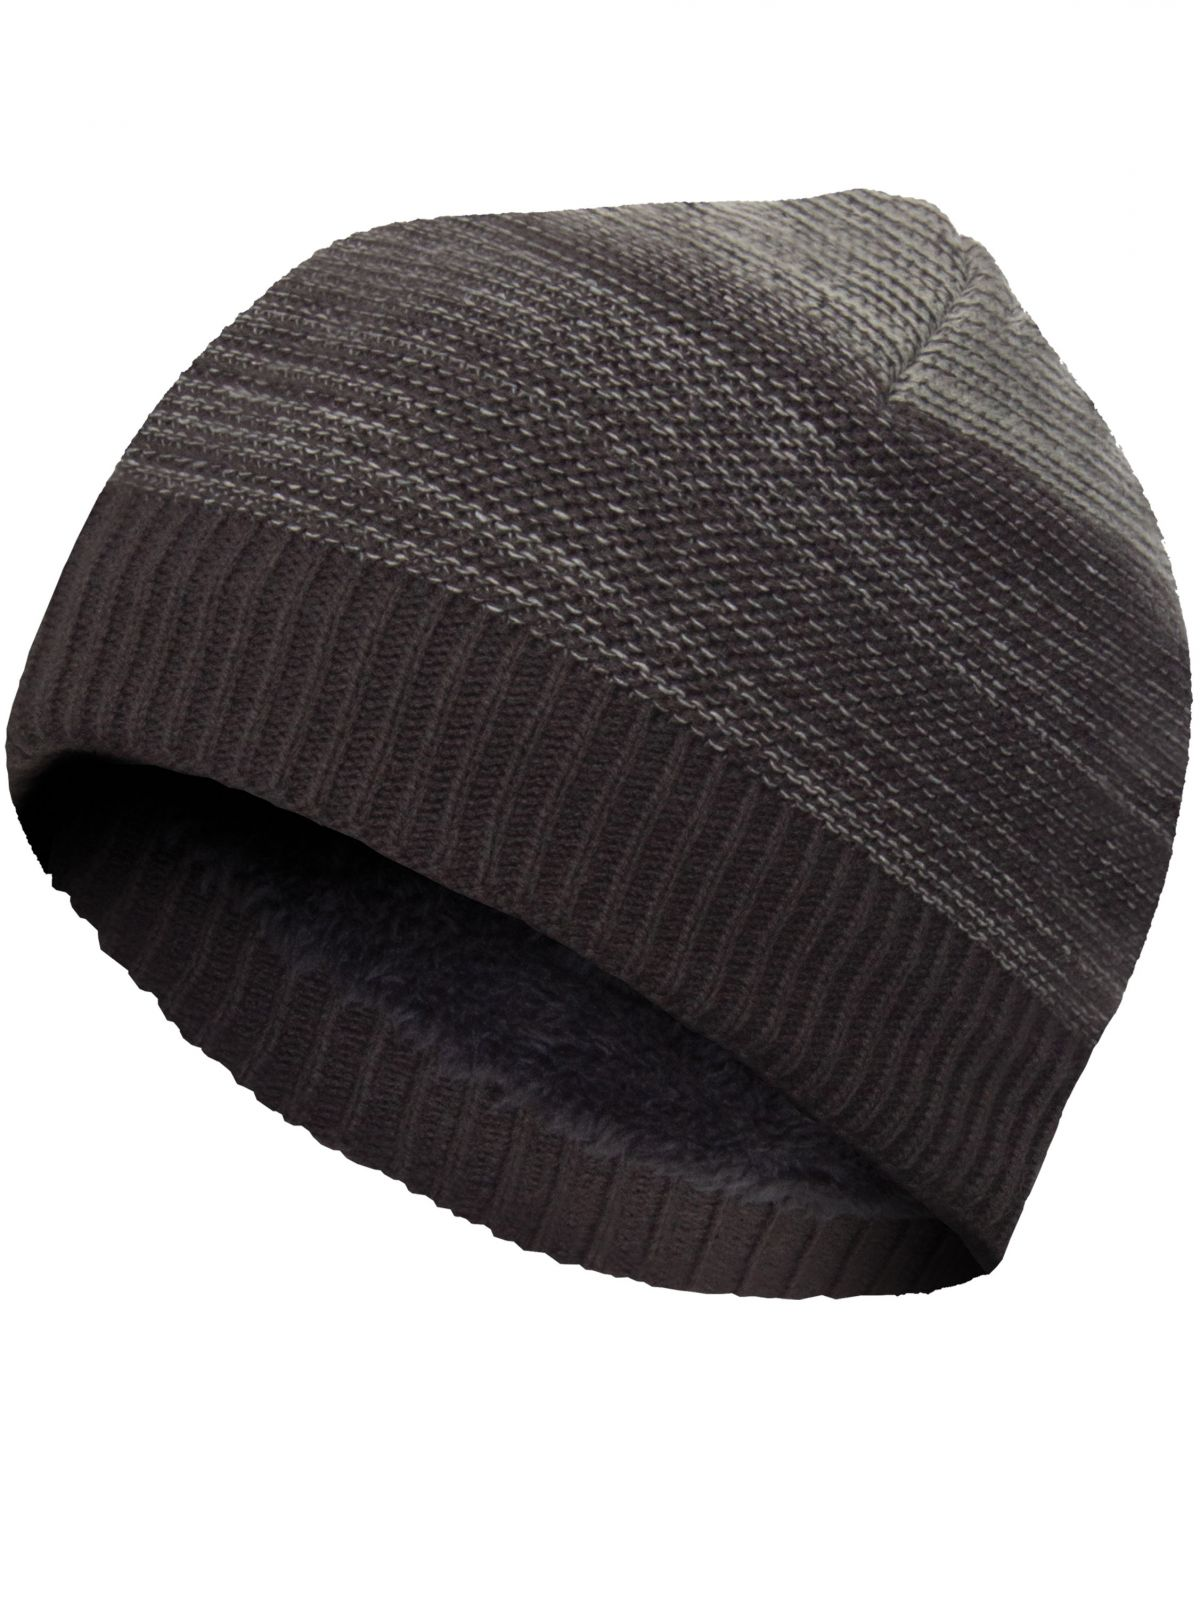 Accessories   Mens Knitted Outdoor Beanie Hat